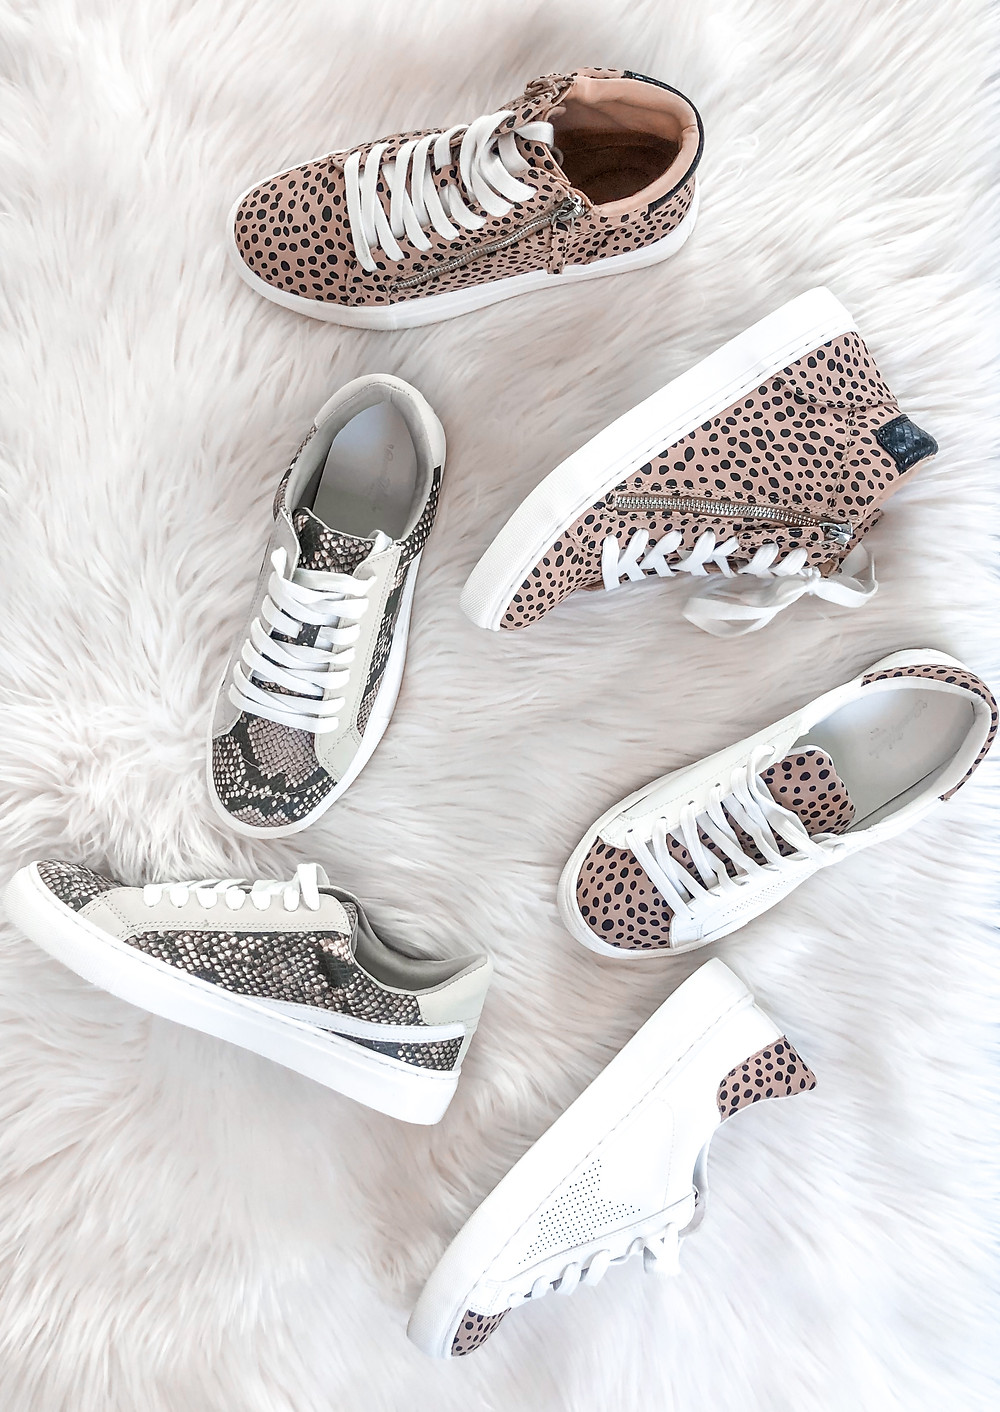 fashion sneakers, target finds, animal print